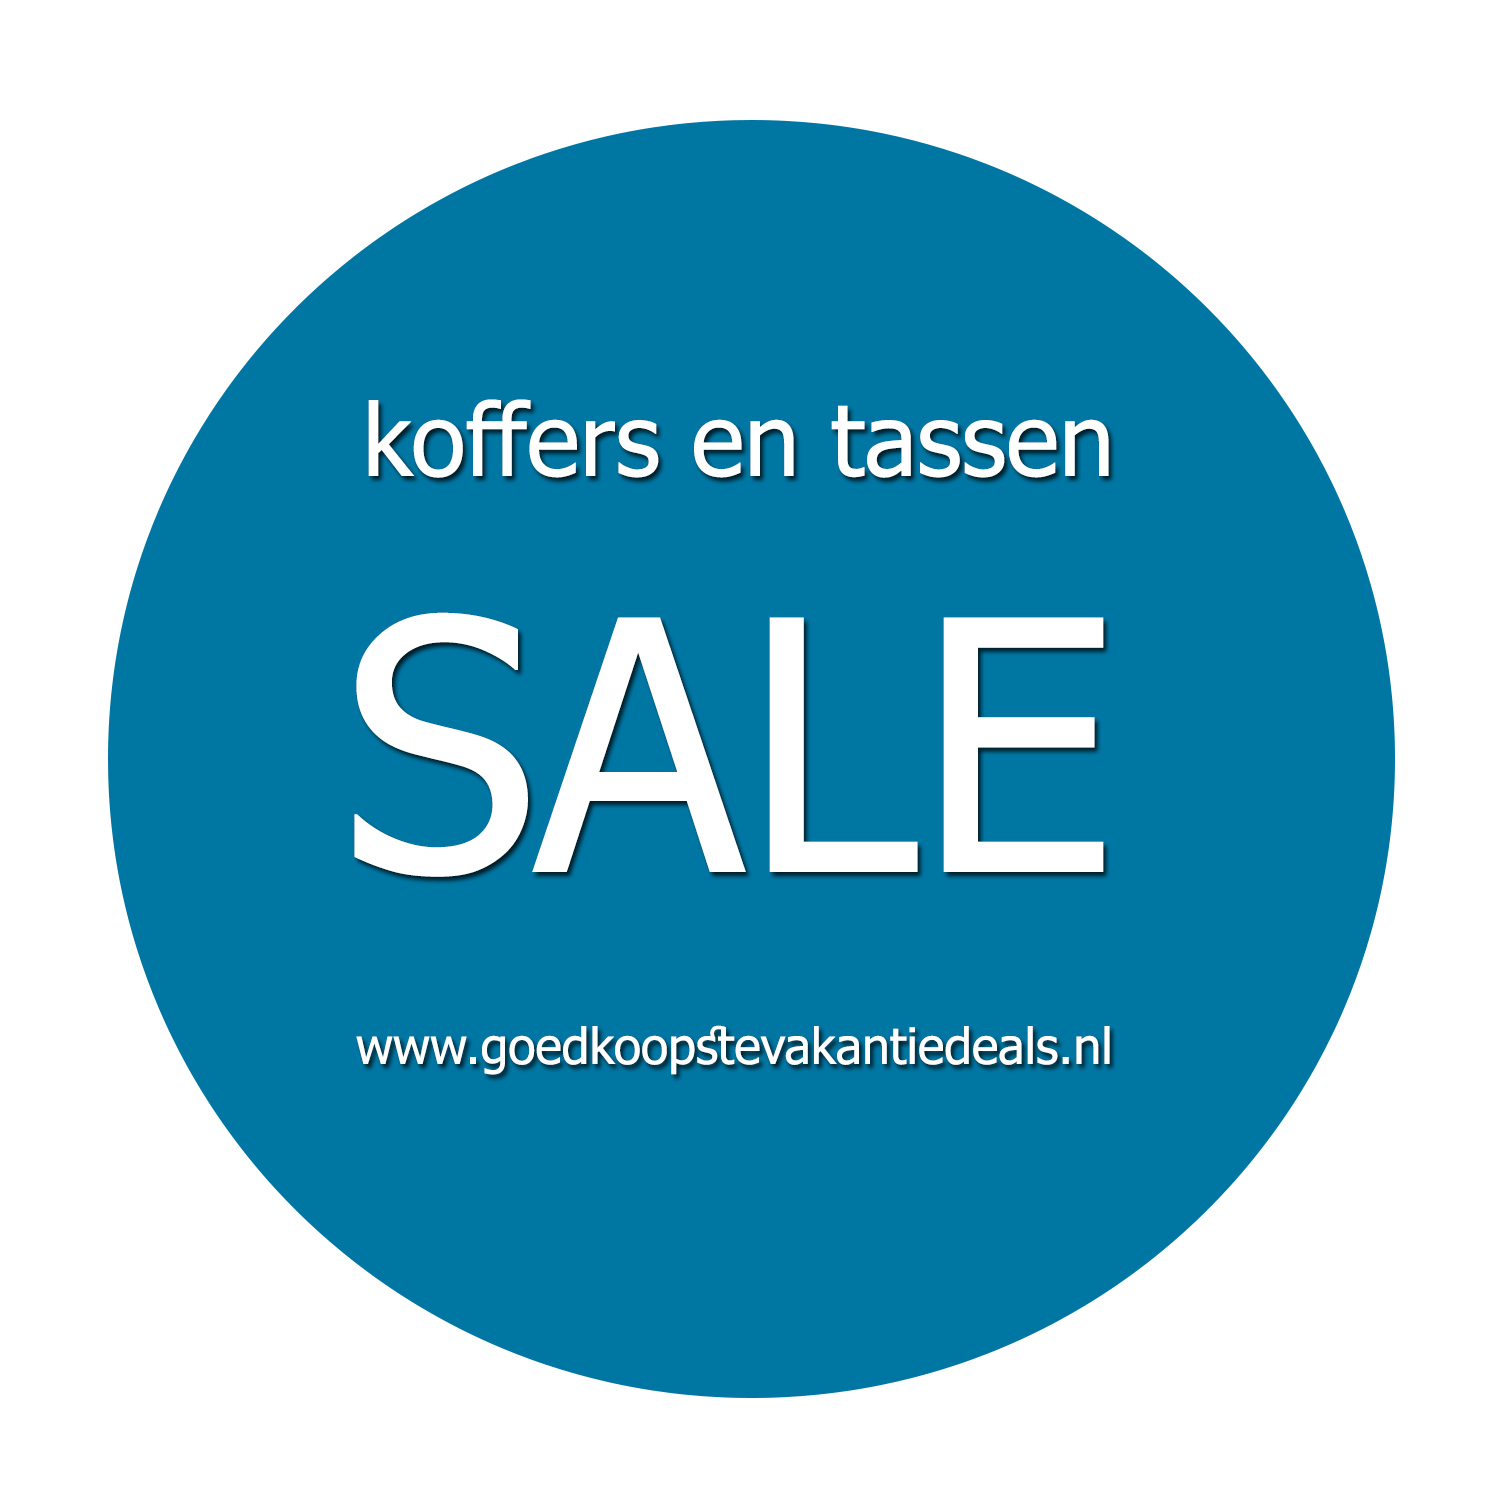 sale koffers en tassen